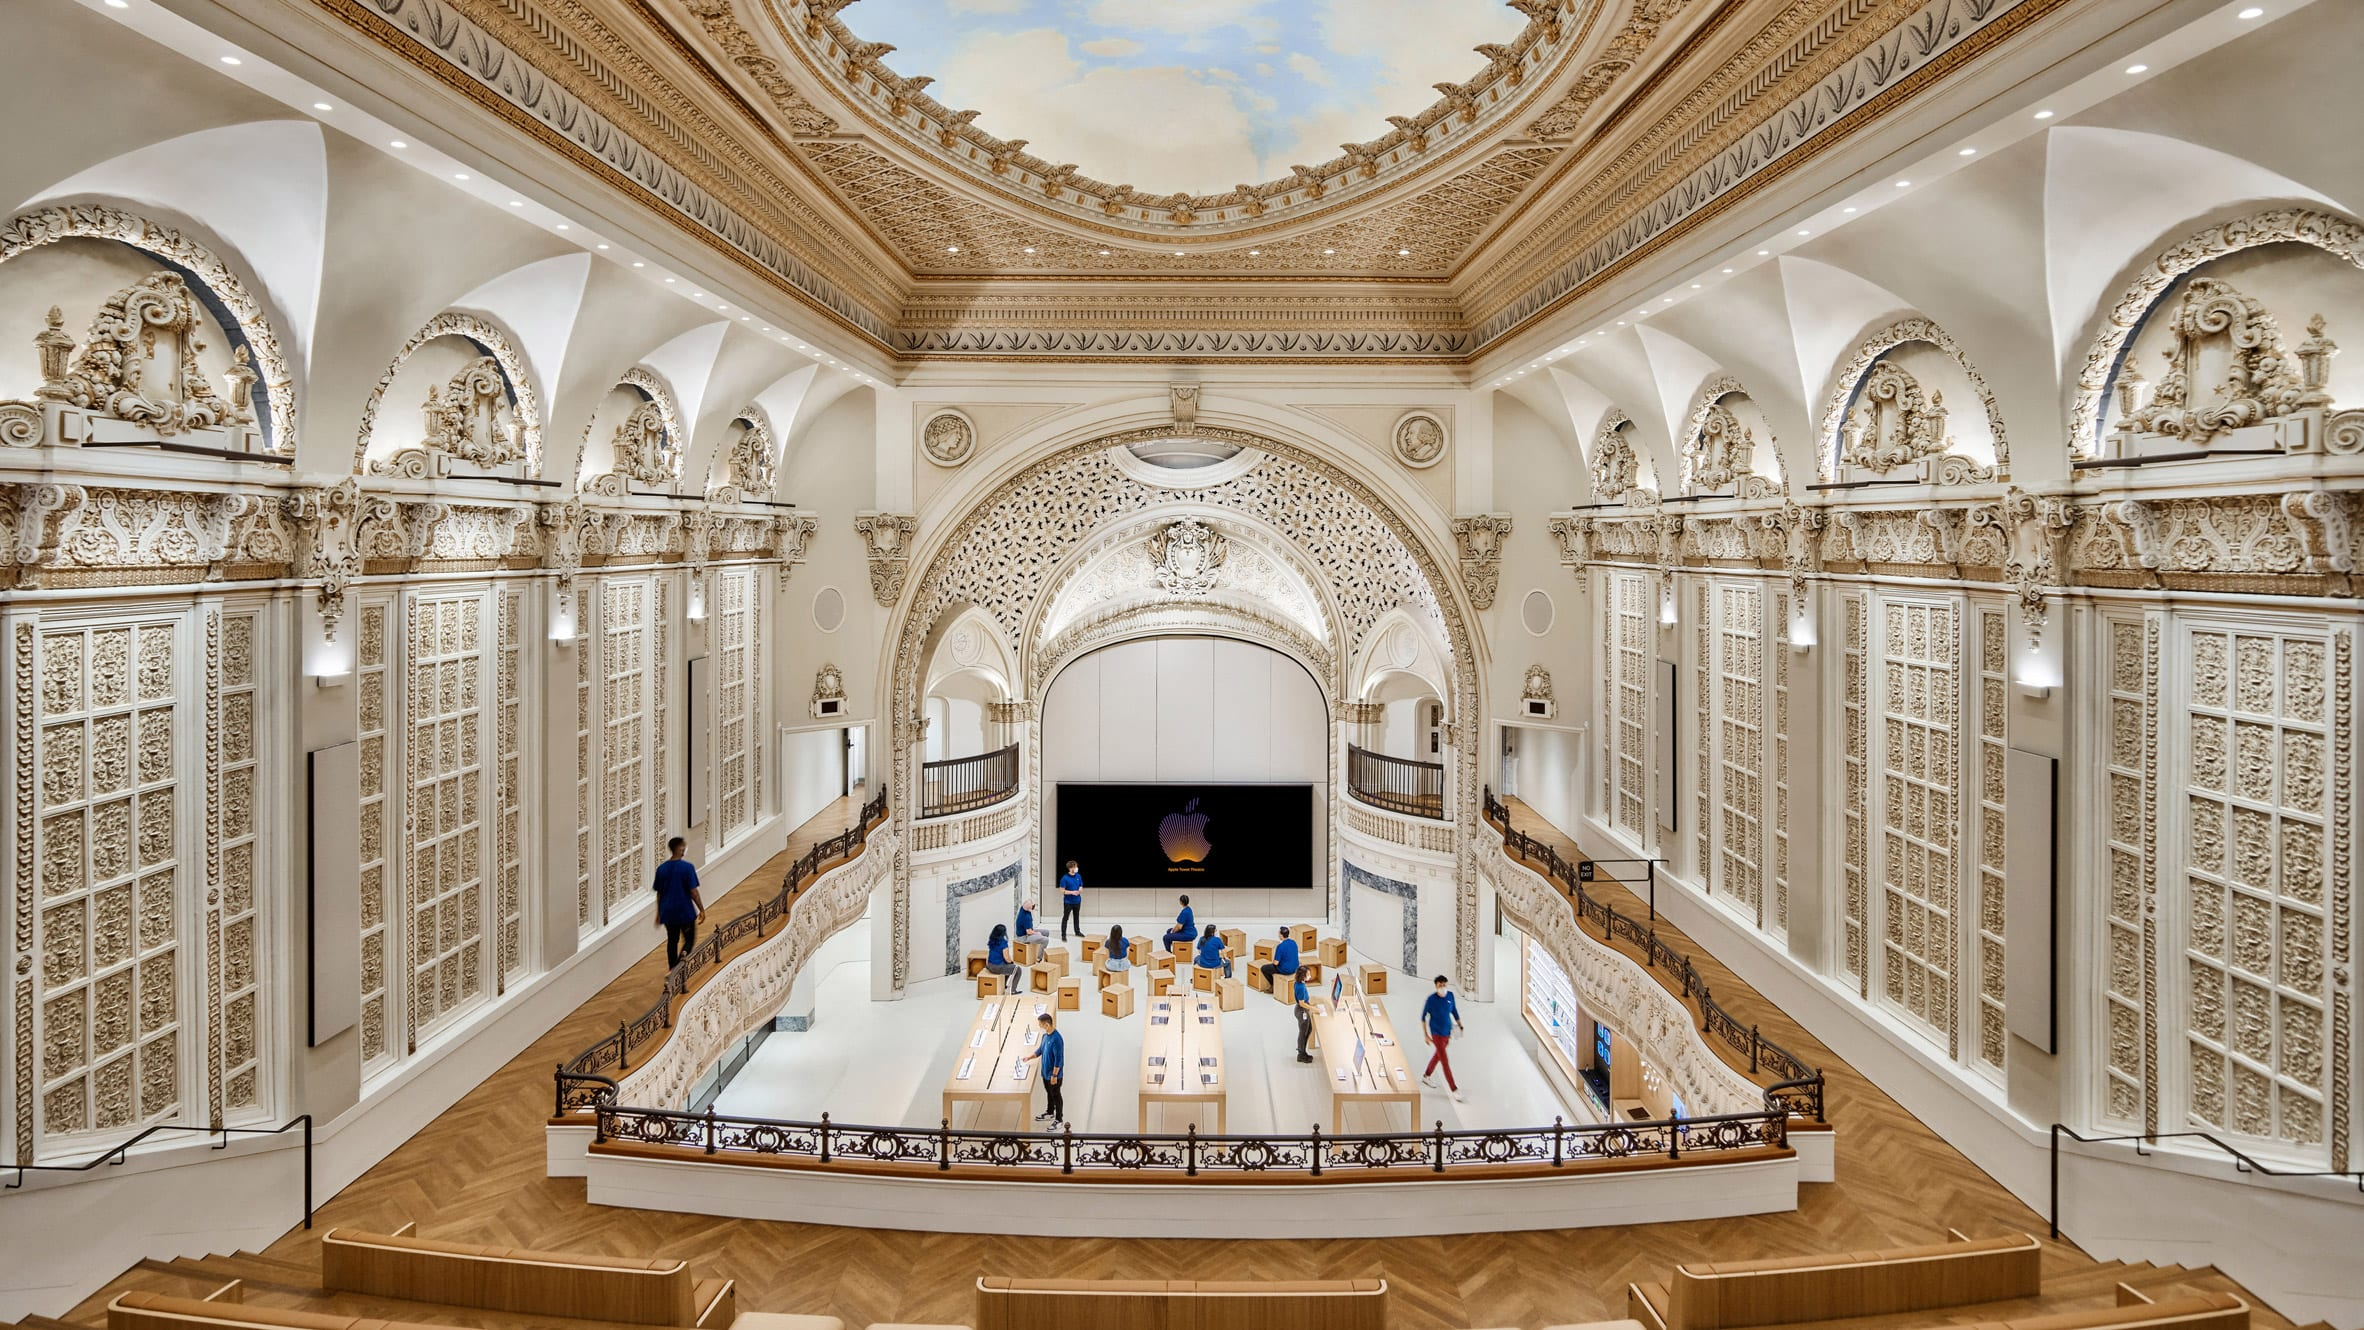 Forum of the Apple Store built inside an old cinema in Los Angeles